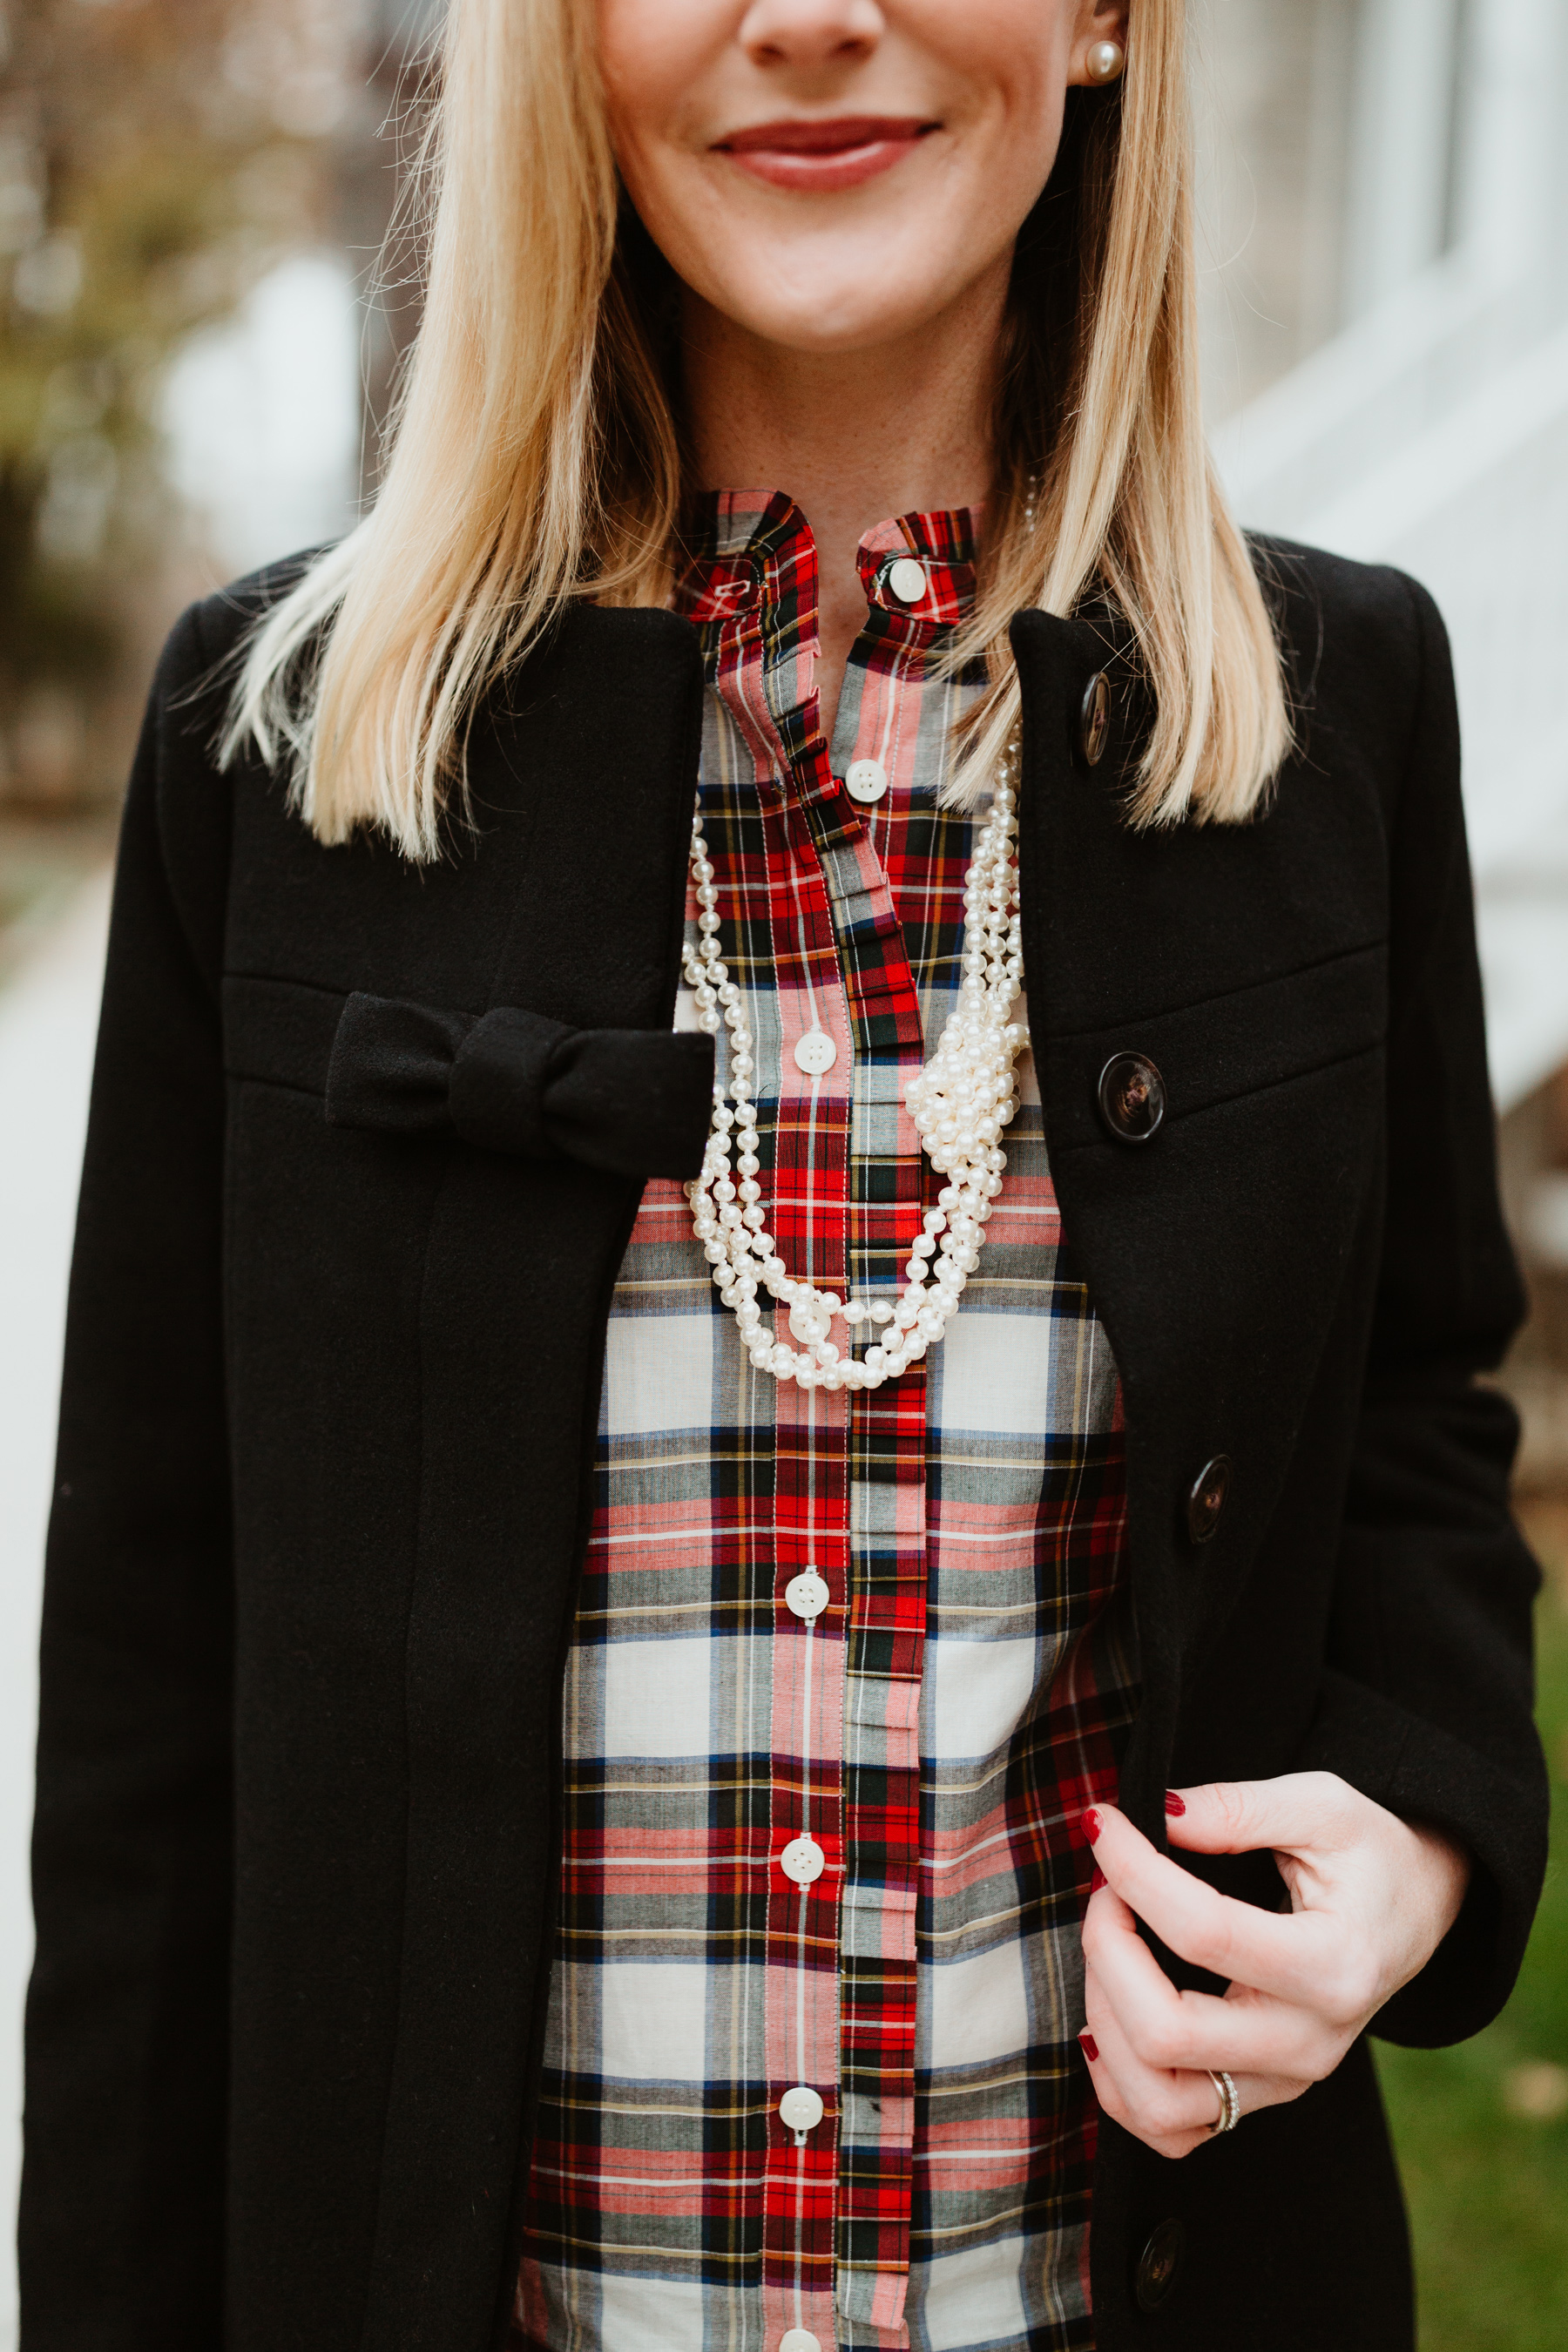 Kelly's Outfit: Tartan Ruffled Shirt, Knotted Pearl Necklace, Bow Coat, Pearl Earrings